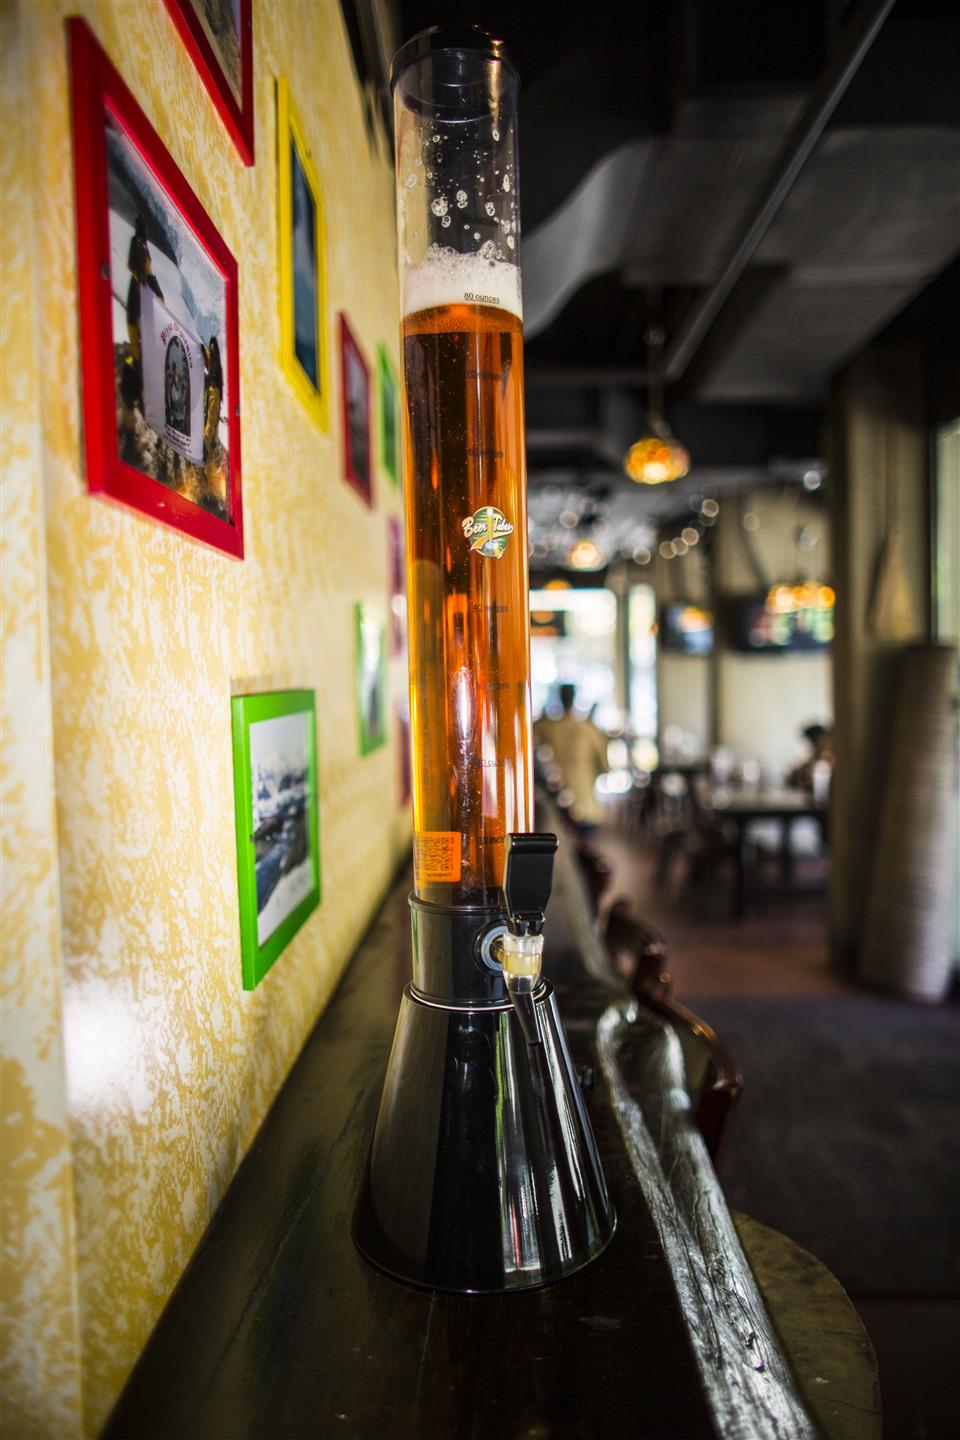 Beer tower filled with beer on wooden bar